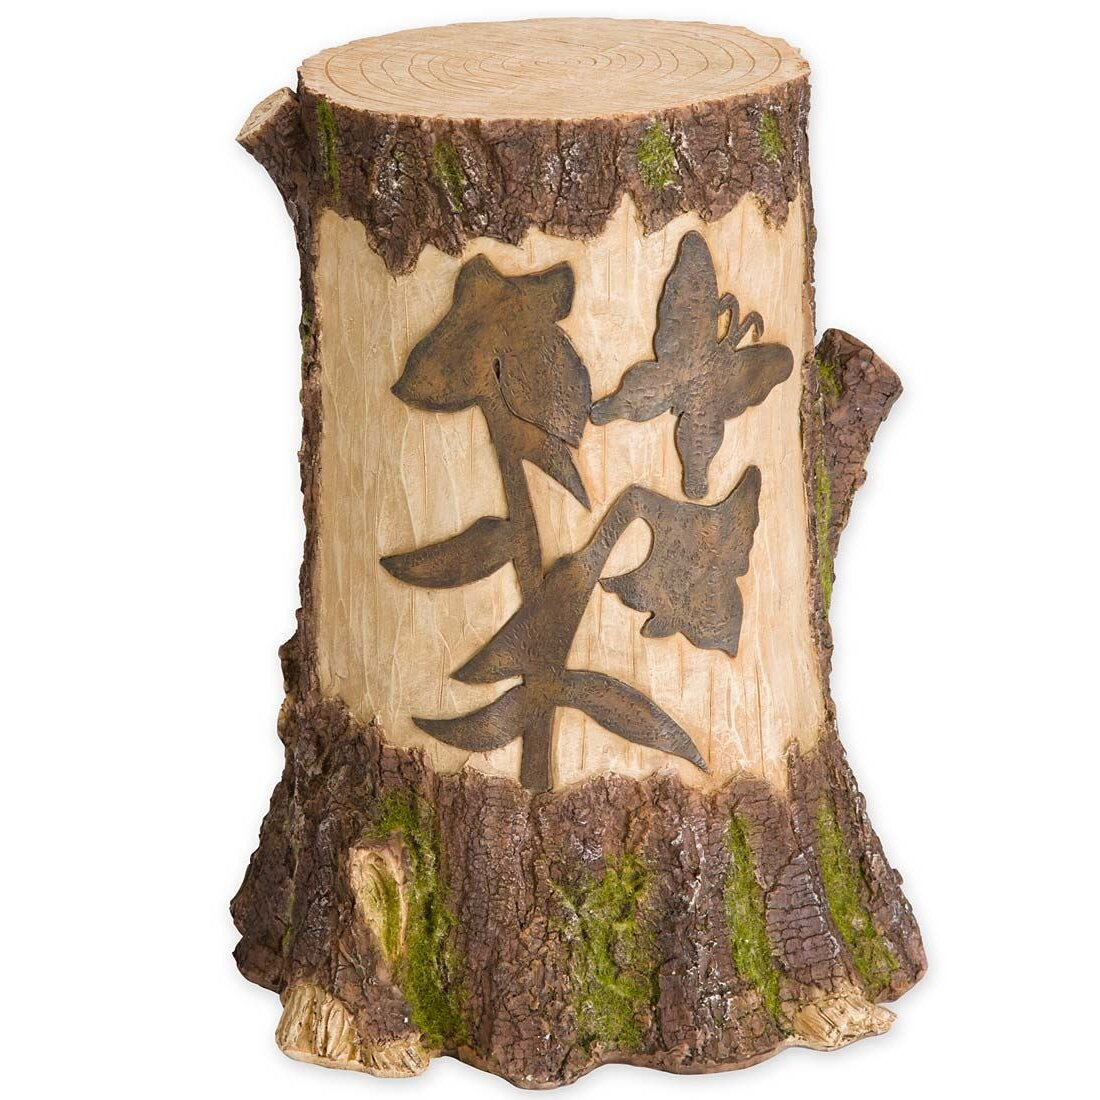 Stump with solar lighted garden statue wayfair for How to make illuminated tree stumps